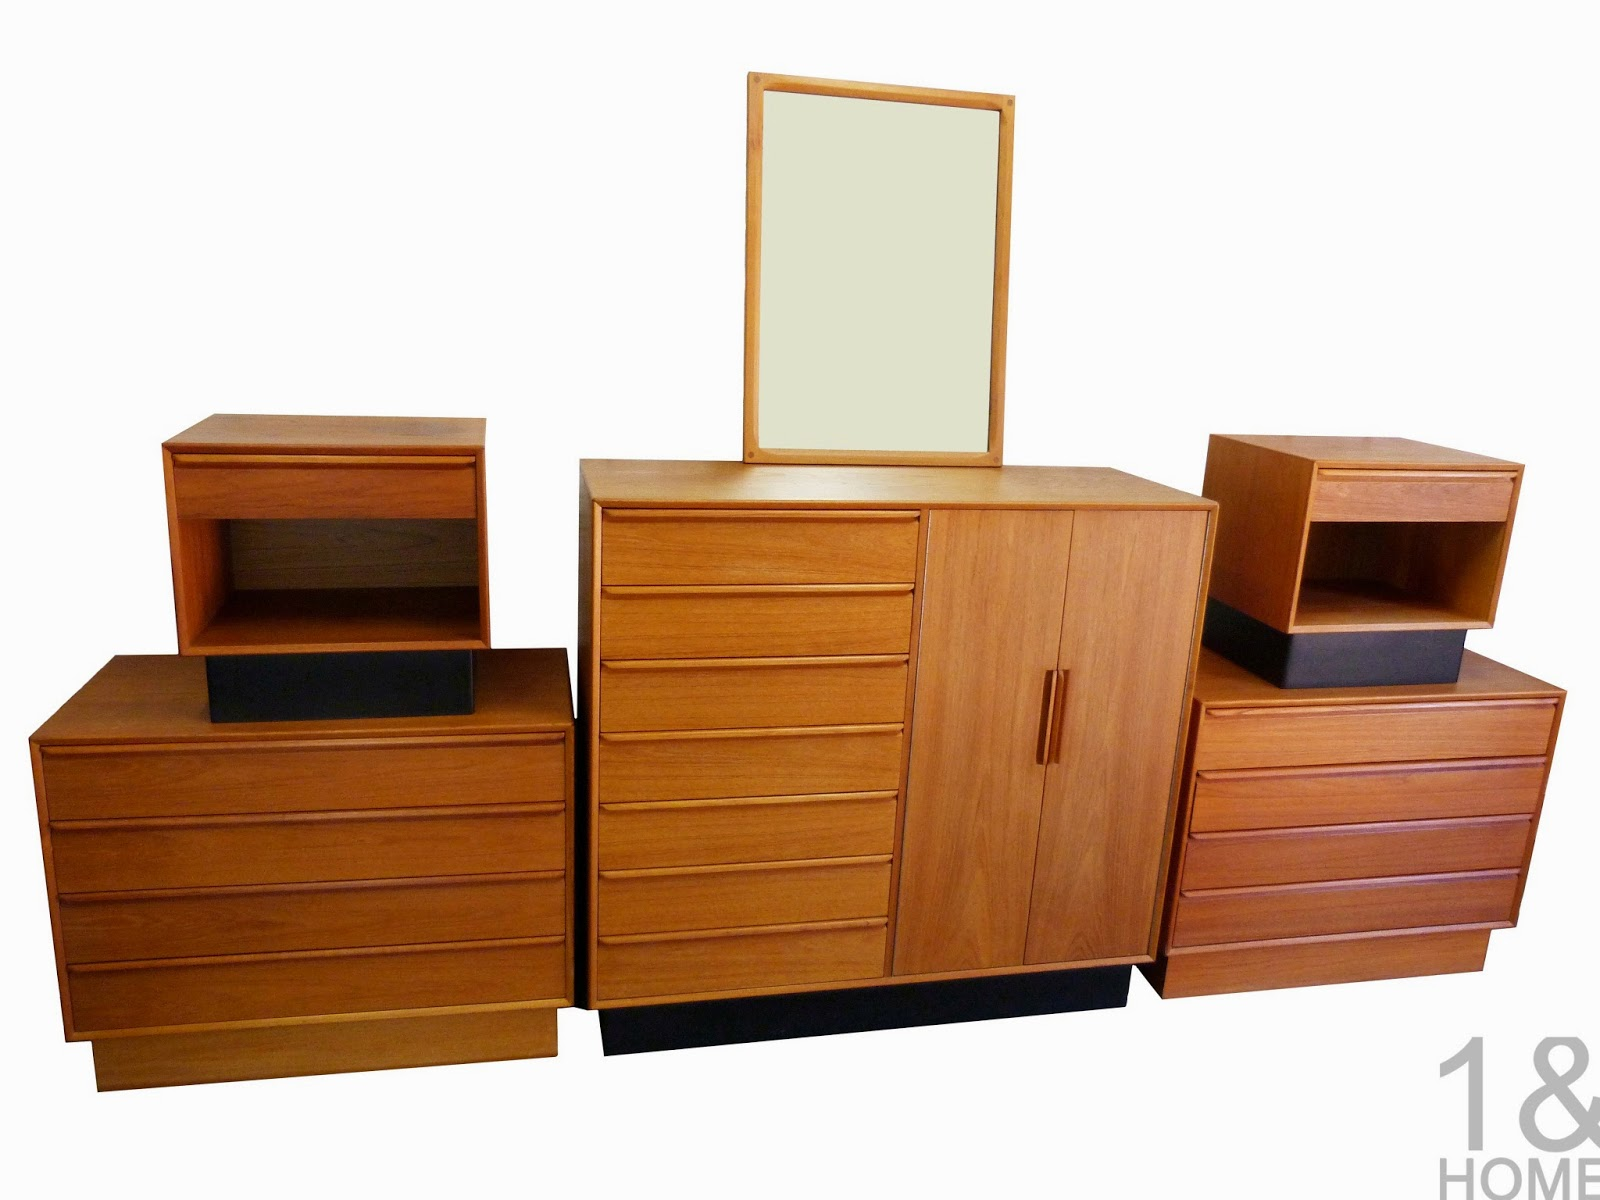 Teak And More modern mid century vintage furniture shop used restoration repair denver